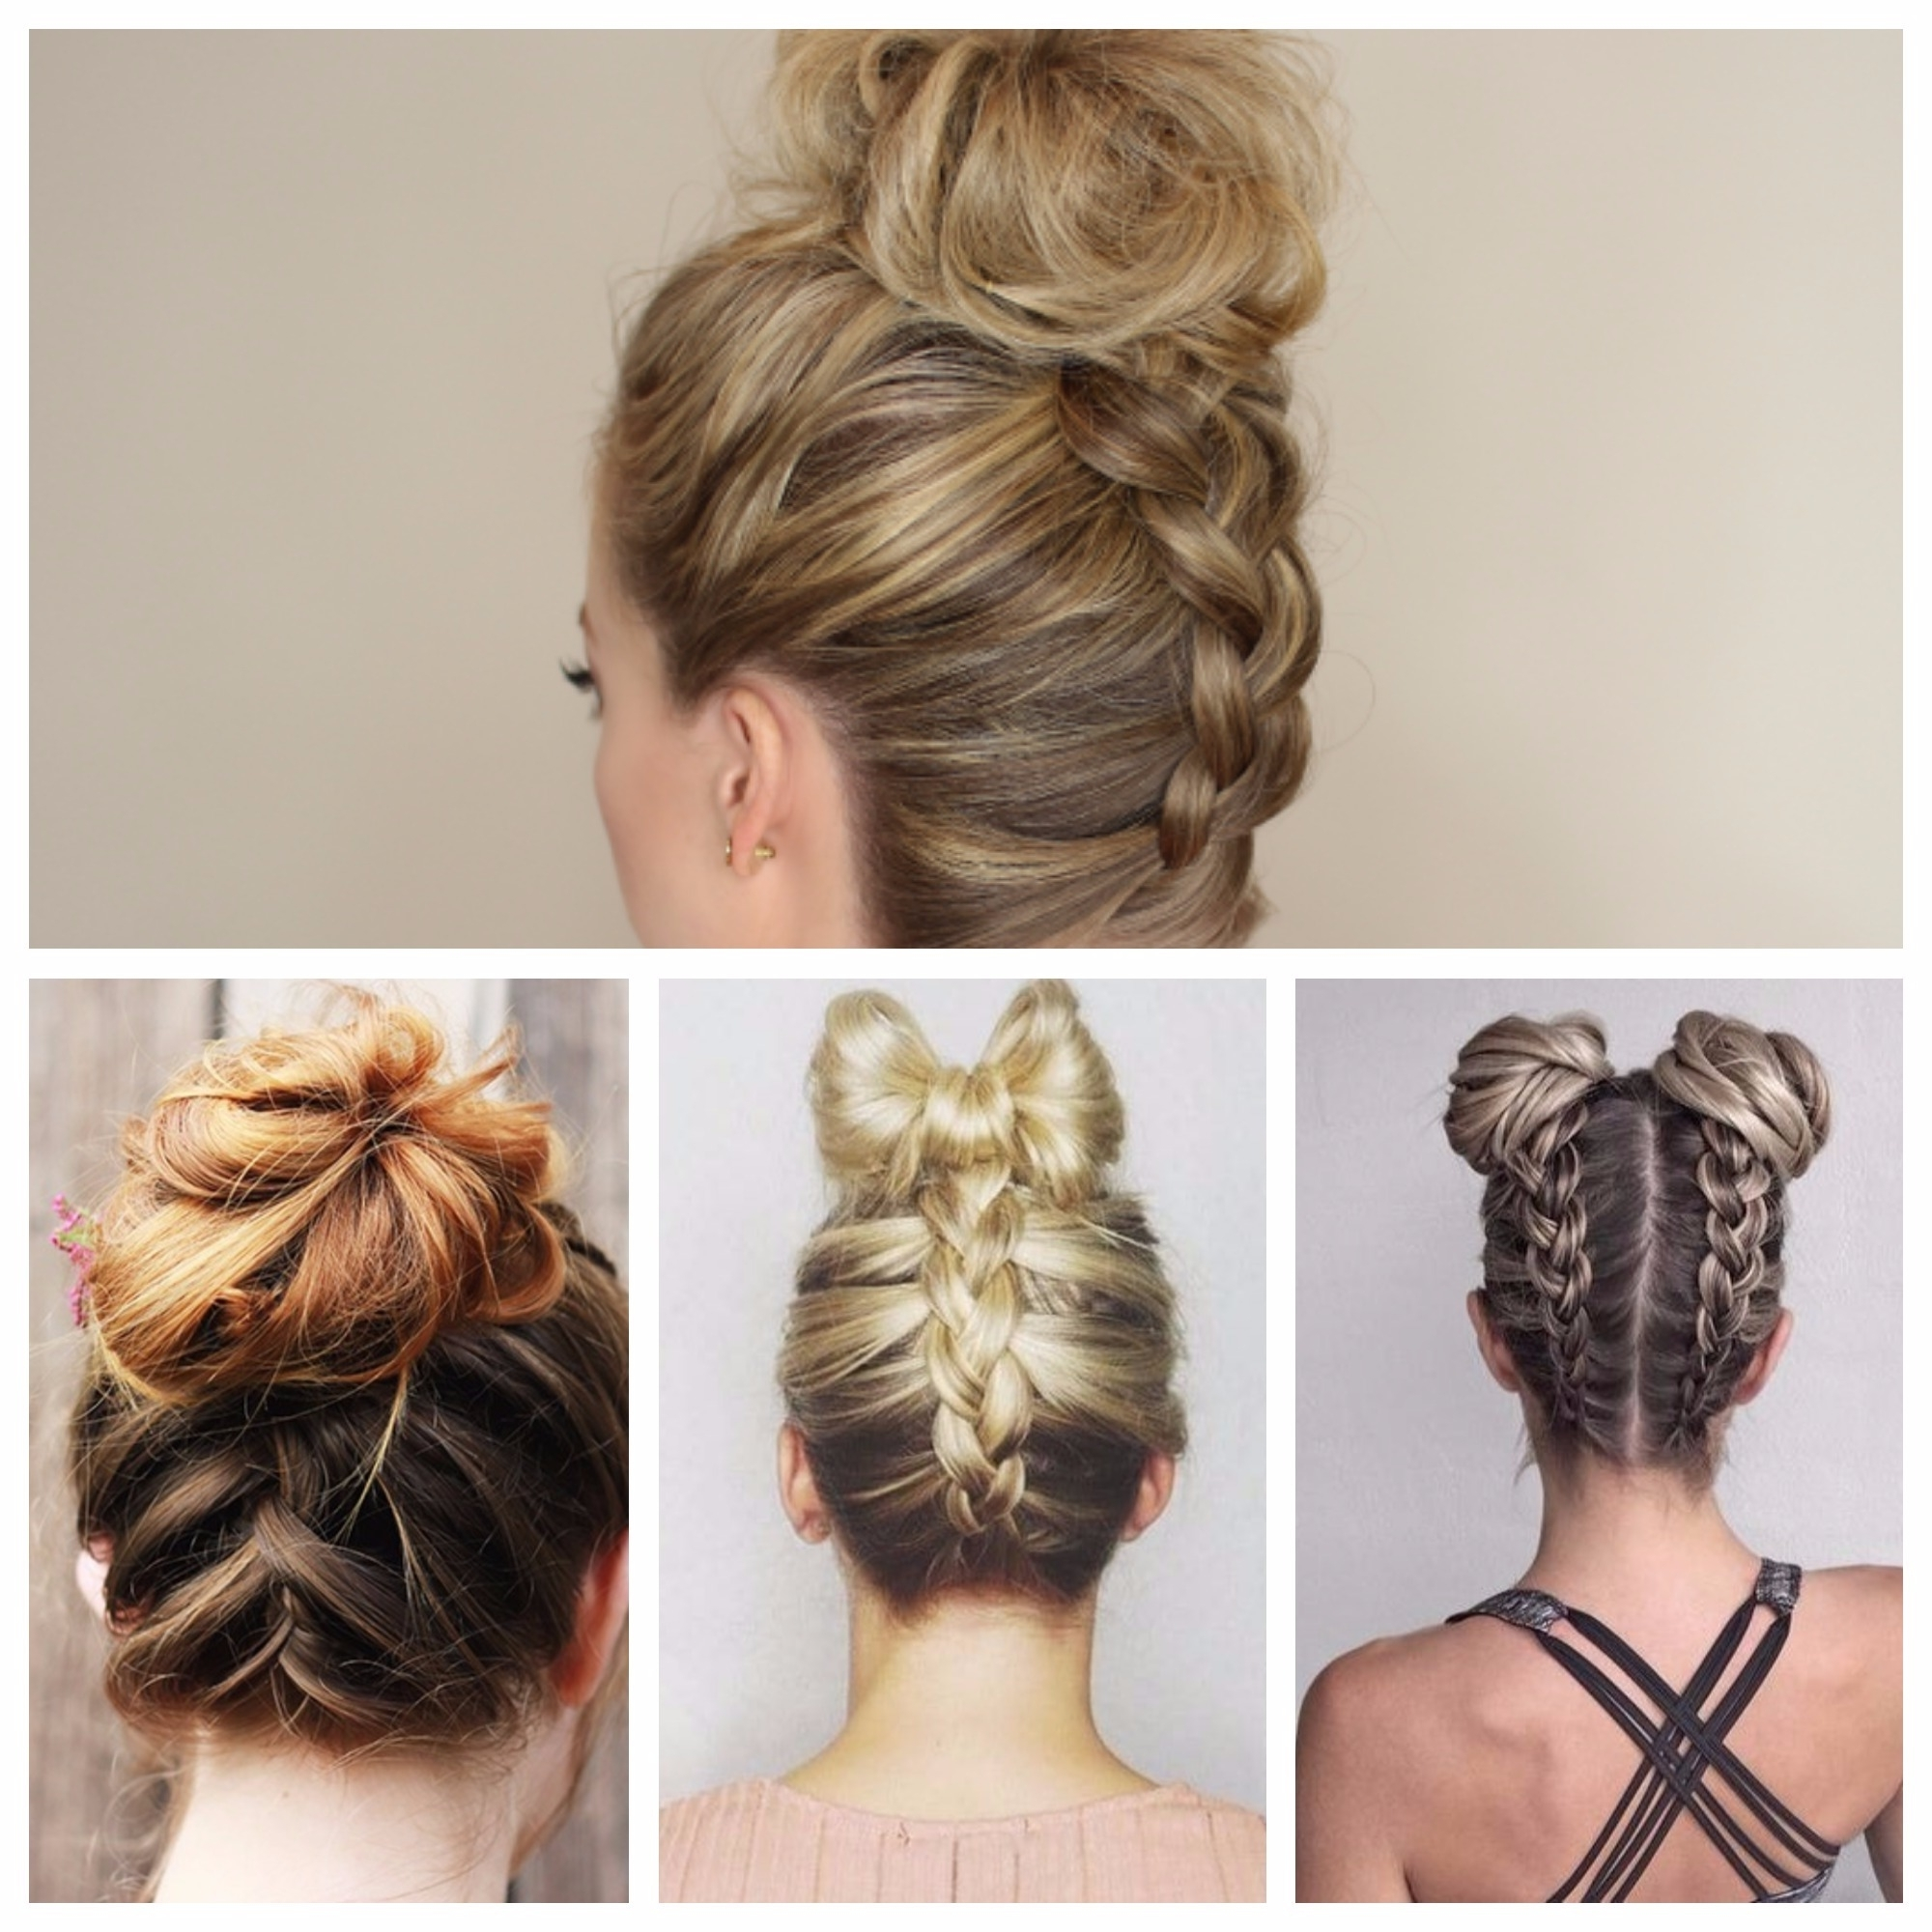 2018 Bun And Braid Hairstyles With Regard To Upside Down French Braid Hairstyles For 2018 – New Hairstyles  (View 2 of 15)